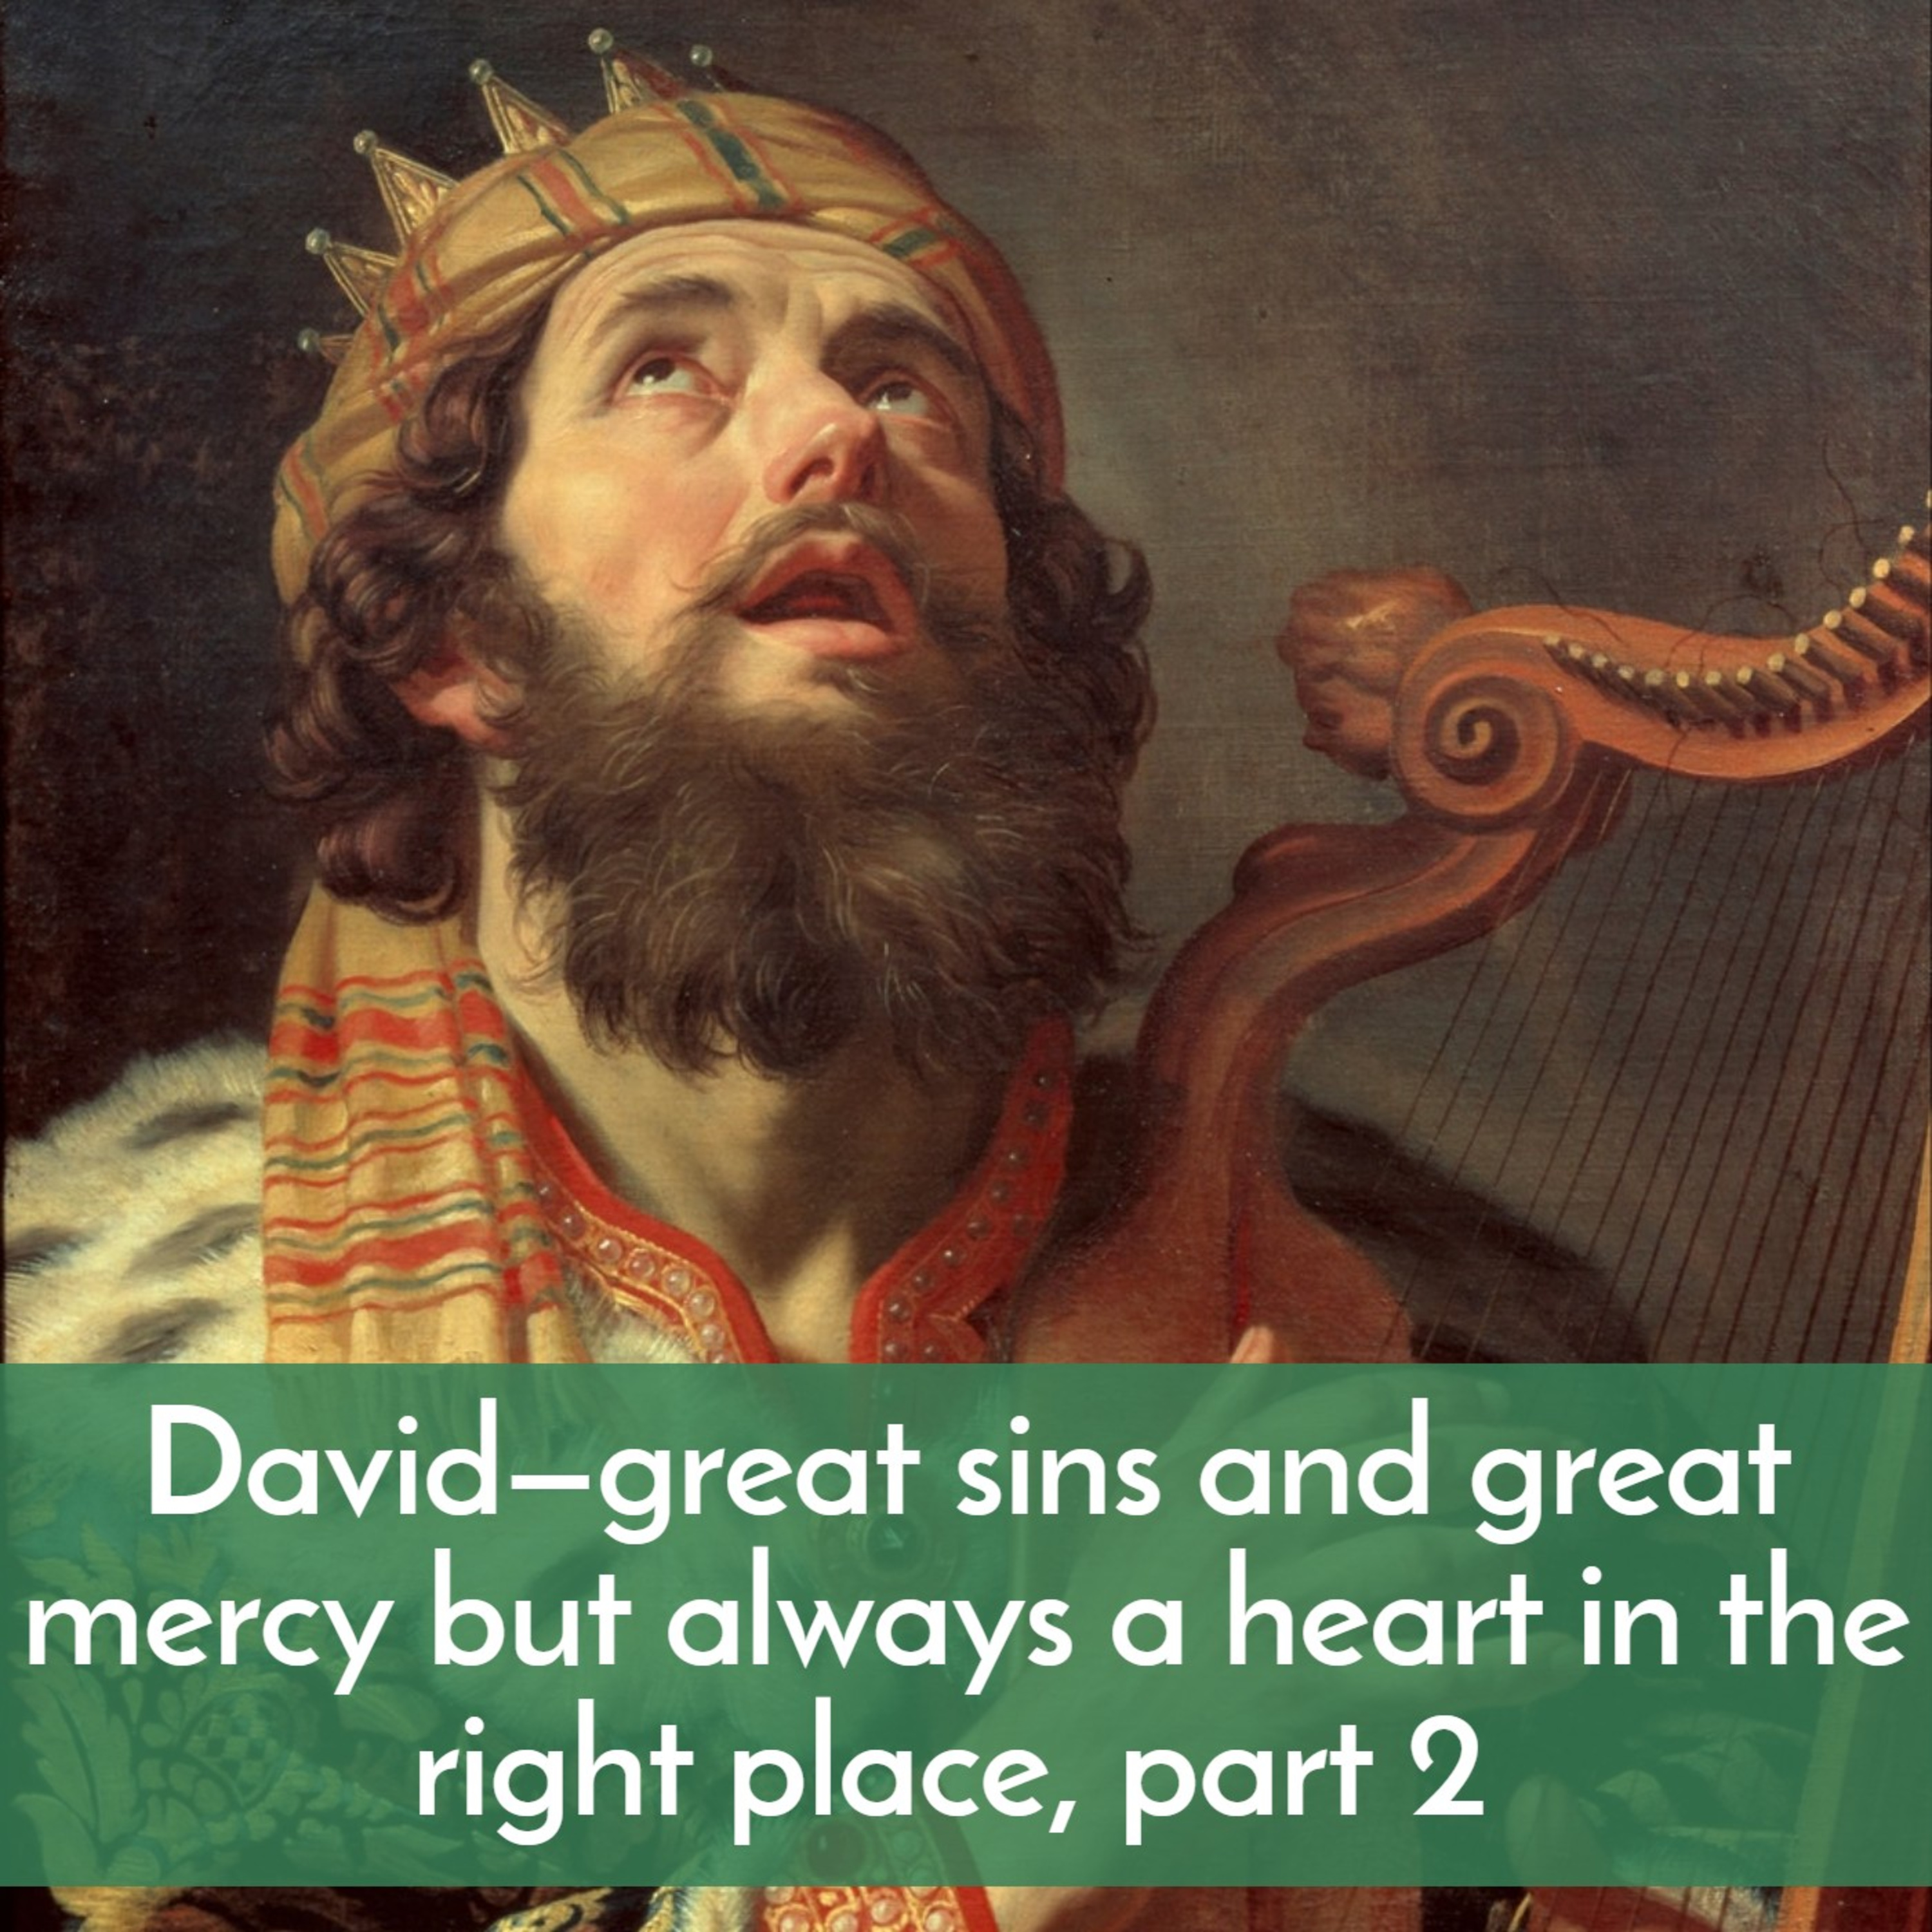 #32 David—great sins and great mercy but always a heart in the right place, part 2